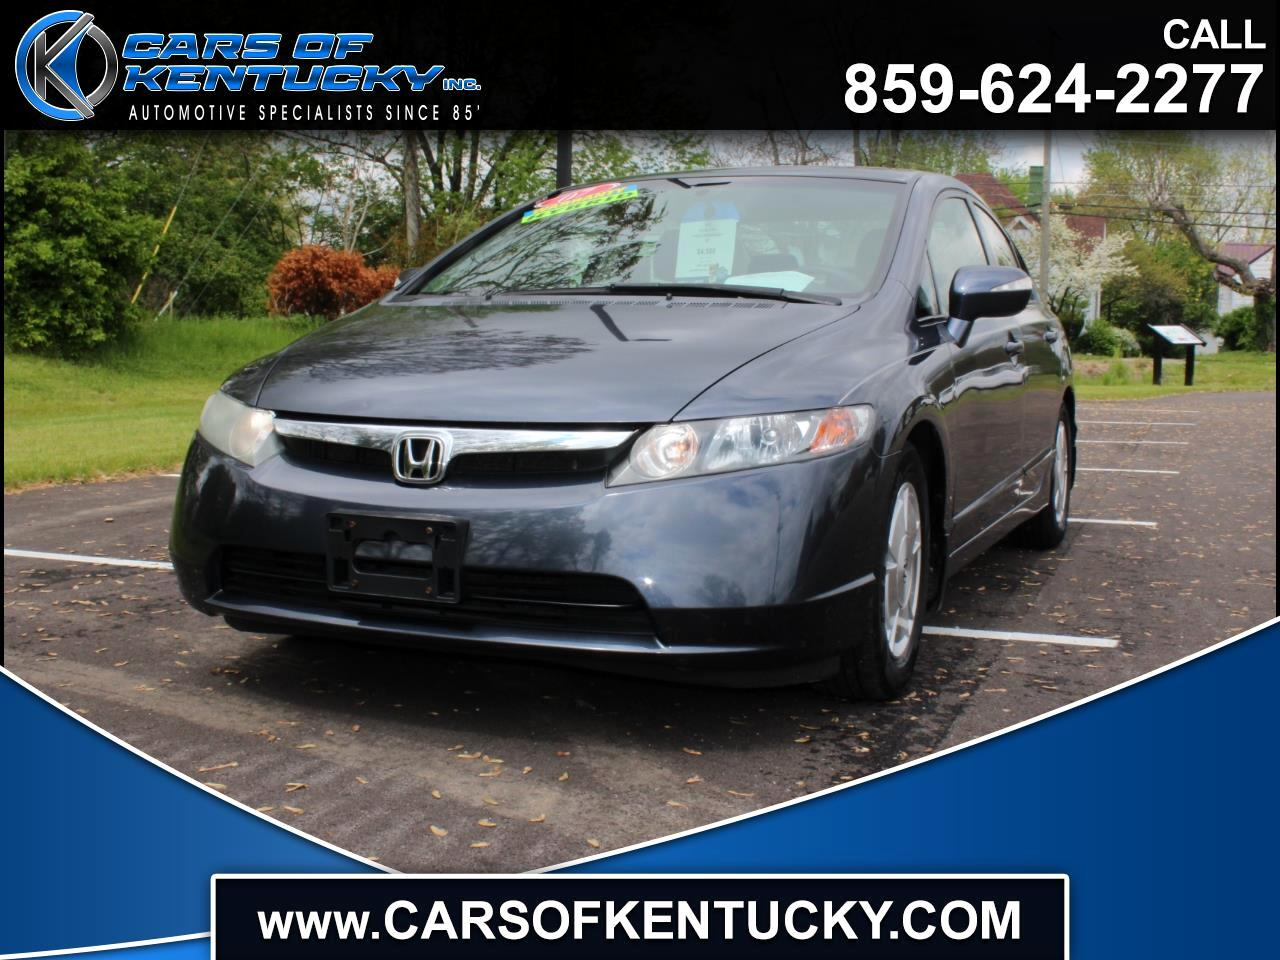 Honda Civic Hybrid CVT AT-PZEV 2007